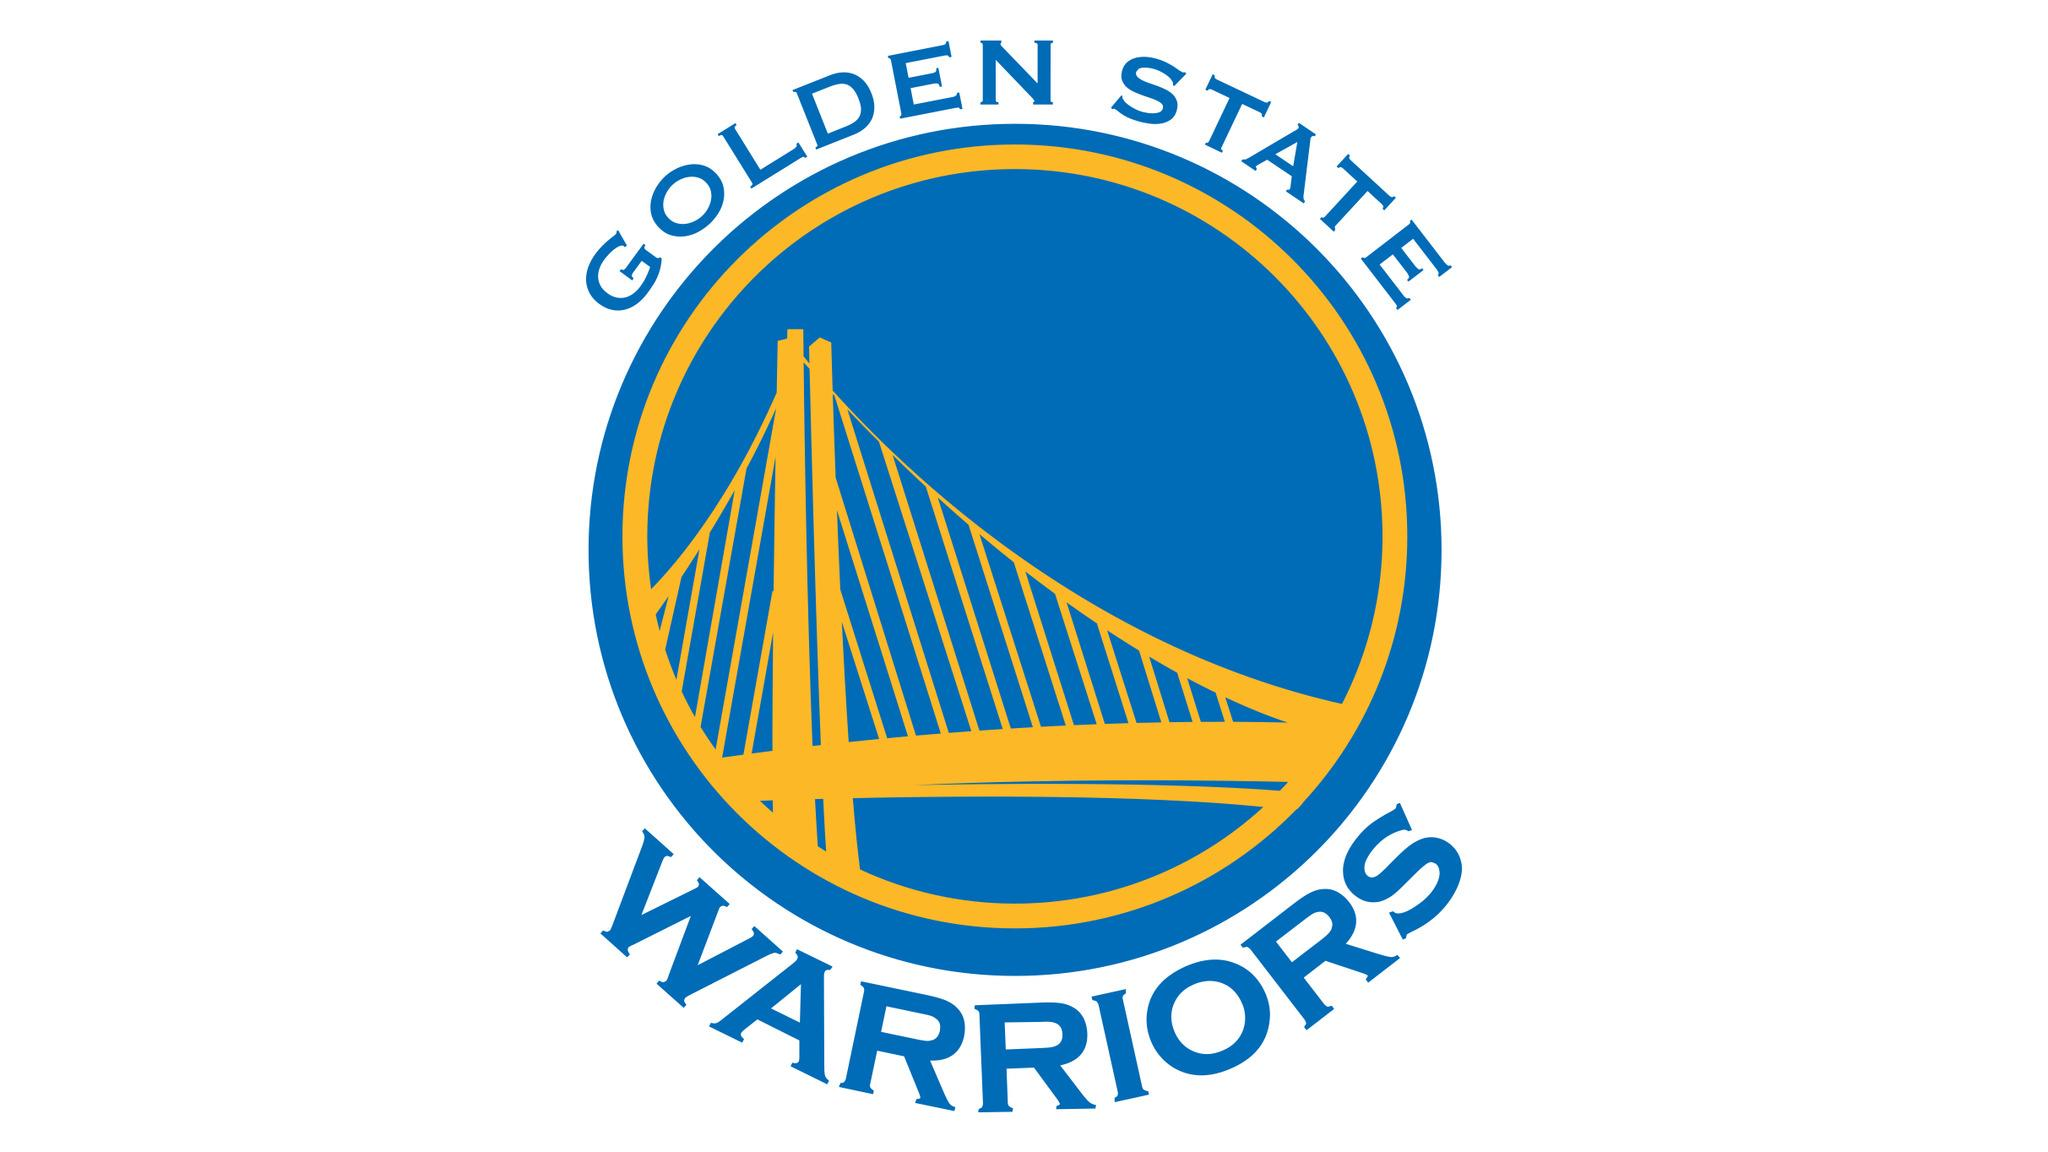 Golden State Warriors vs. Portland Trail Blazers - Oakland, CA 94621